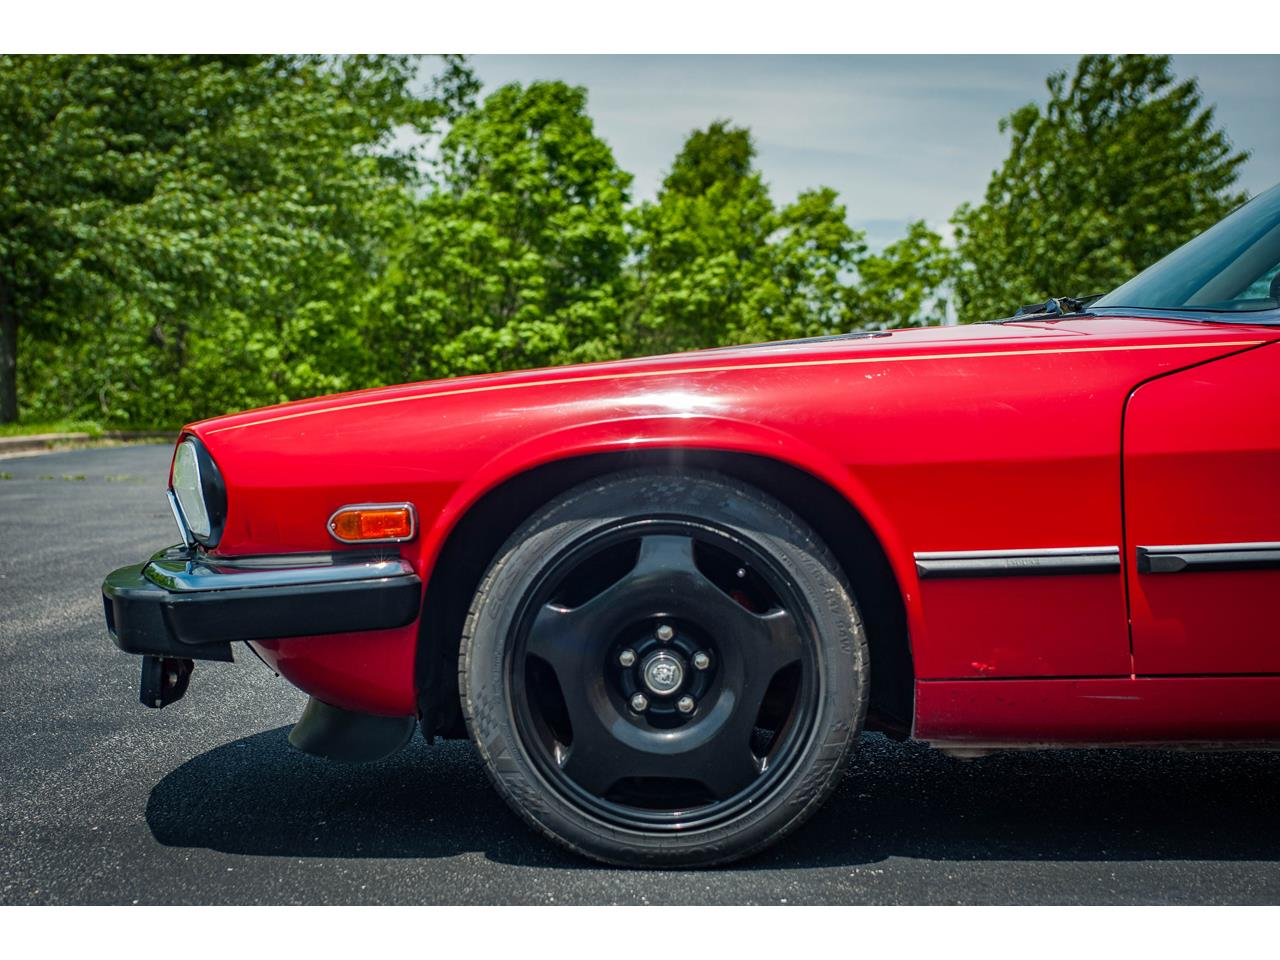 Large Picture of 1989 XJS located in O'Fallon Illinois - $20,000.00 Offered by Gateway Classic Cars - St. Louis - QB9L